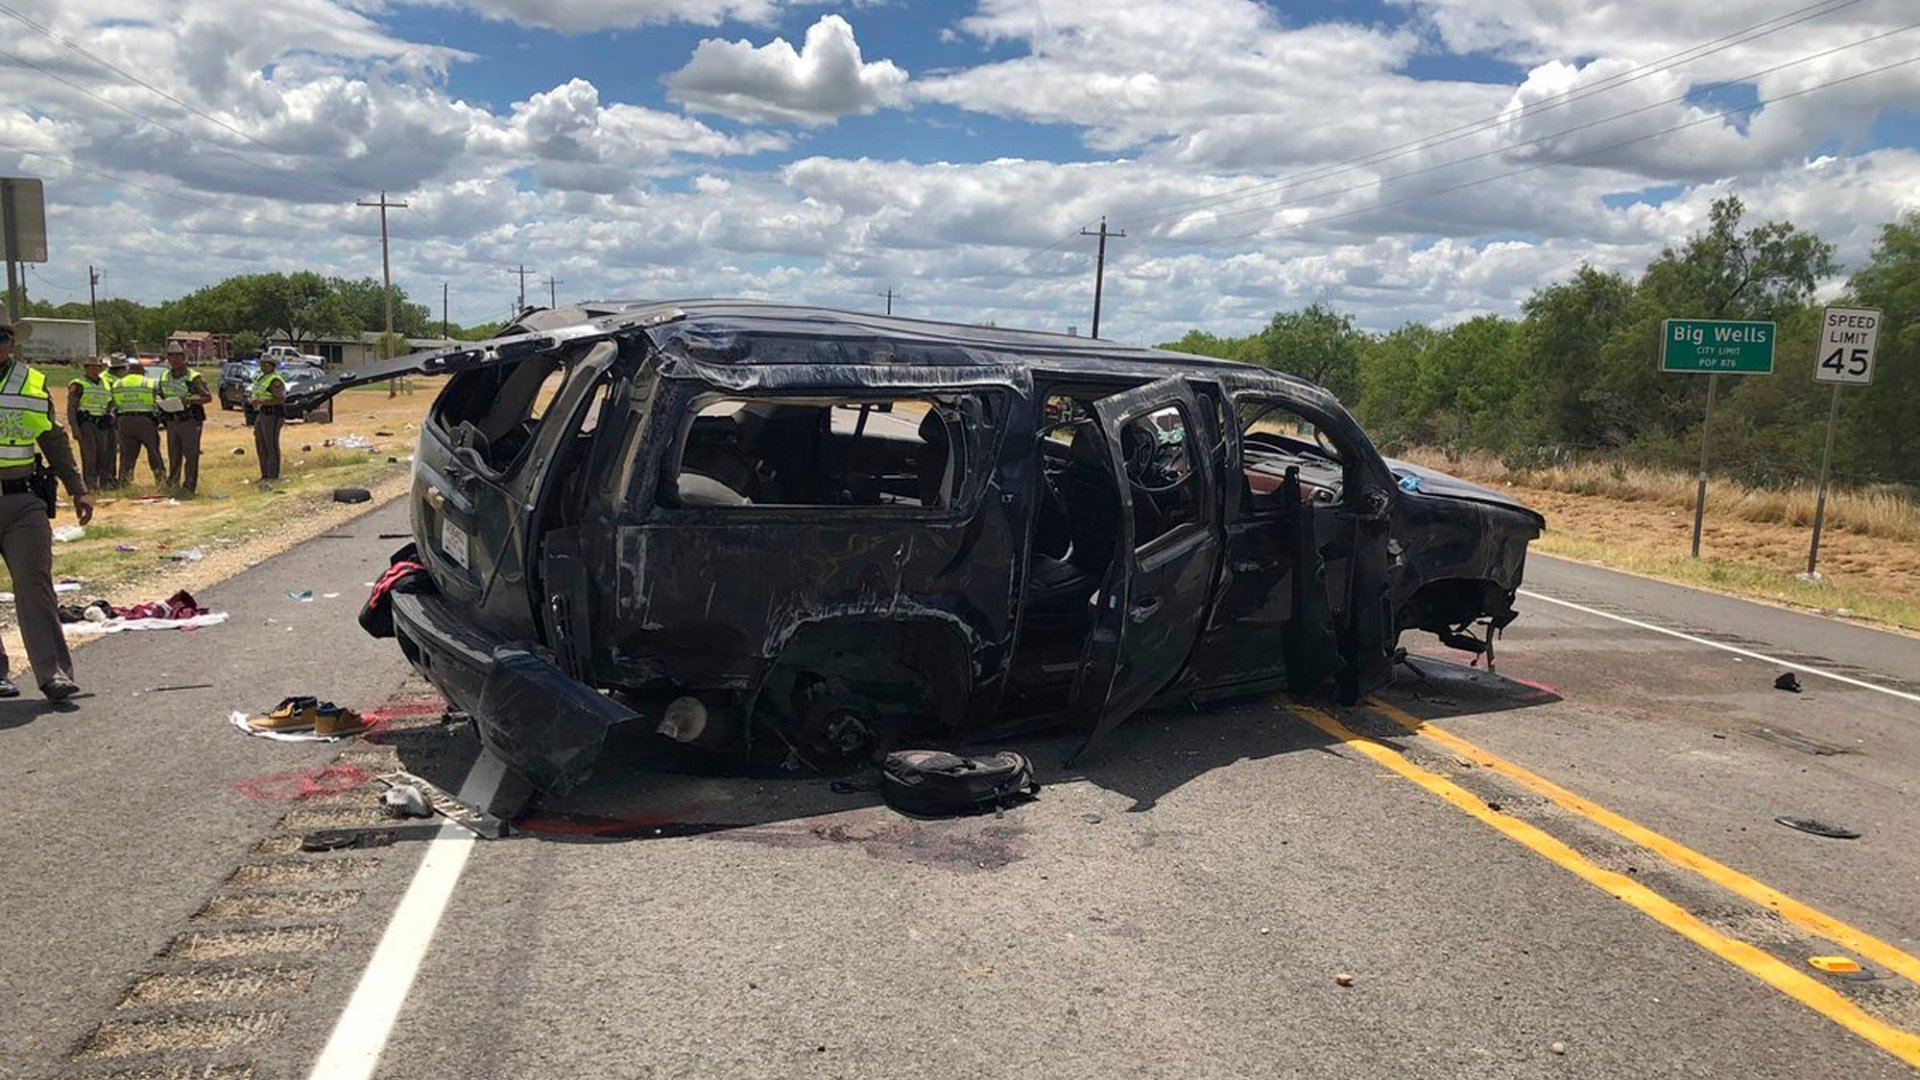 At least 5 dead in Texas after Border Patrol car chase